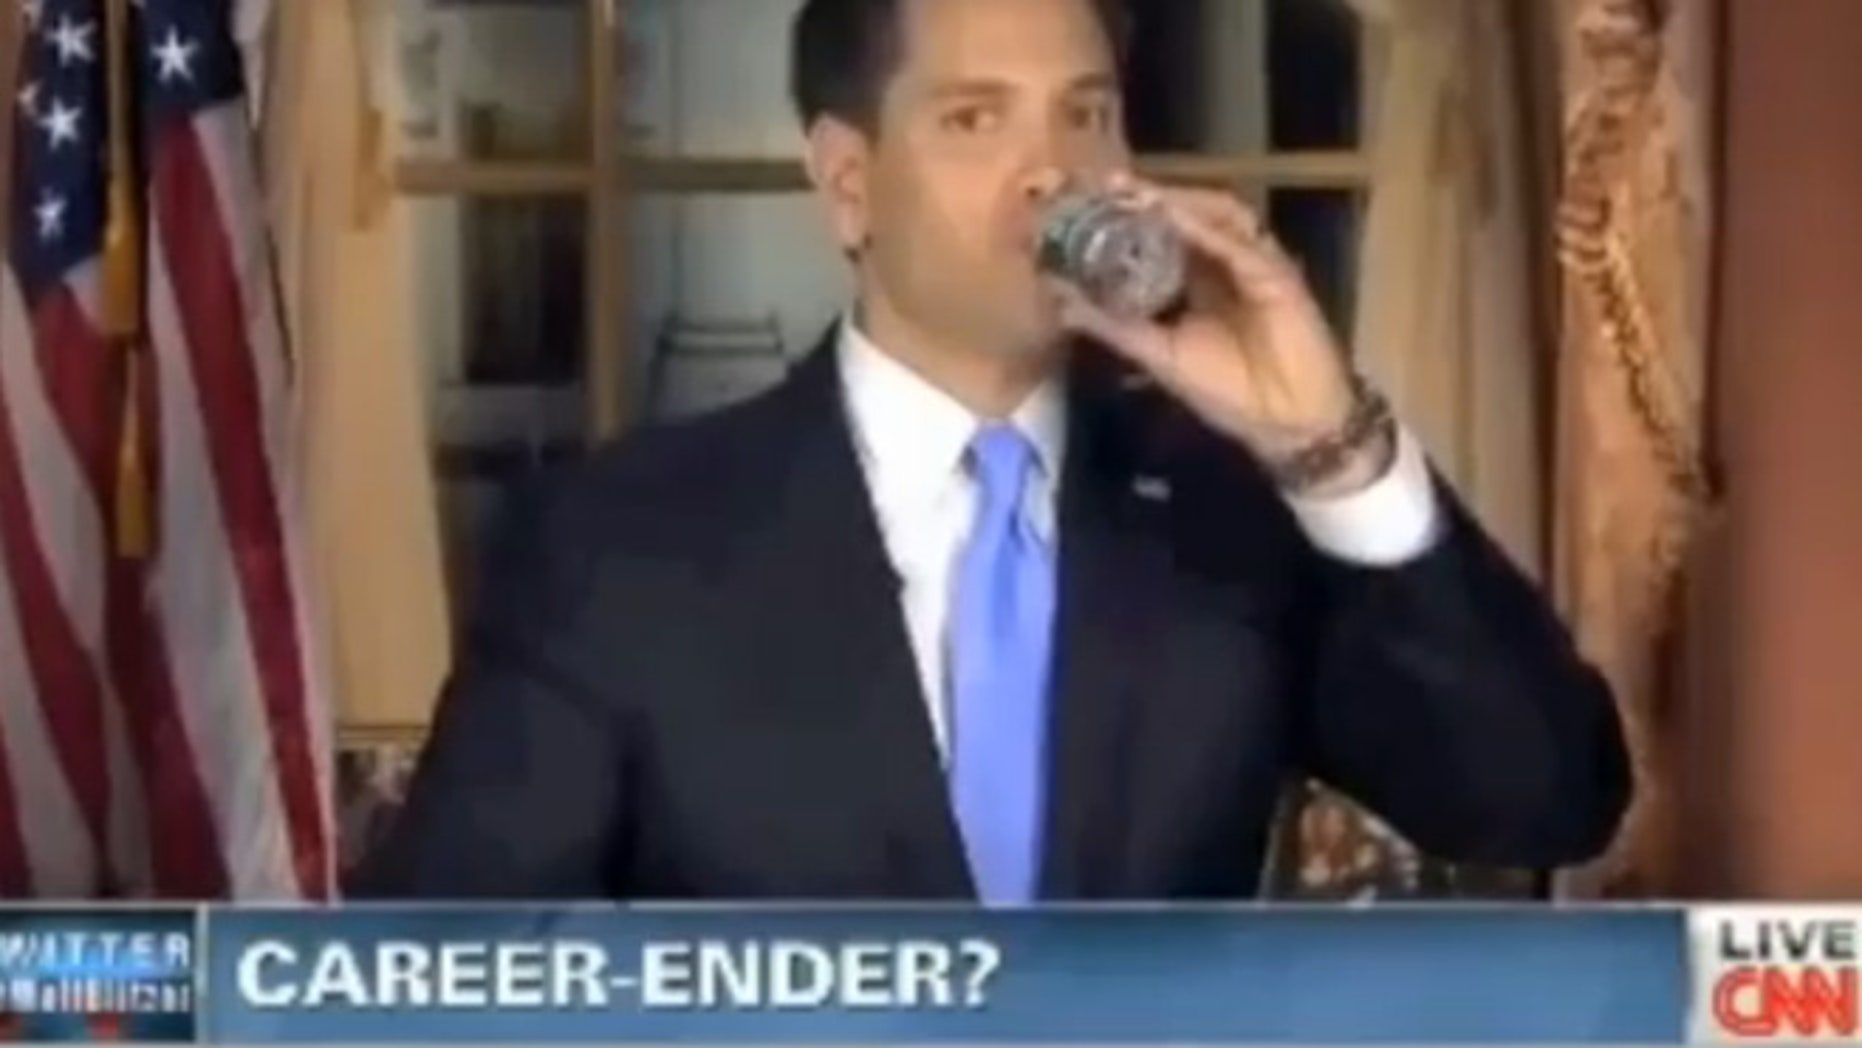 Shown here is a screen grab from CNN on Feb. 13, 2013, teasing a segment on Sen. Marco Rubio.